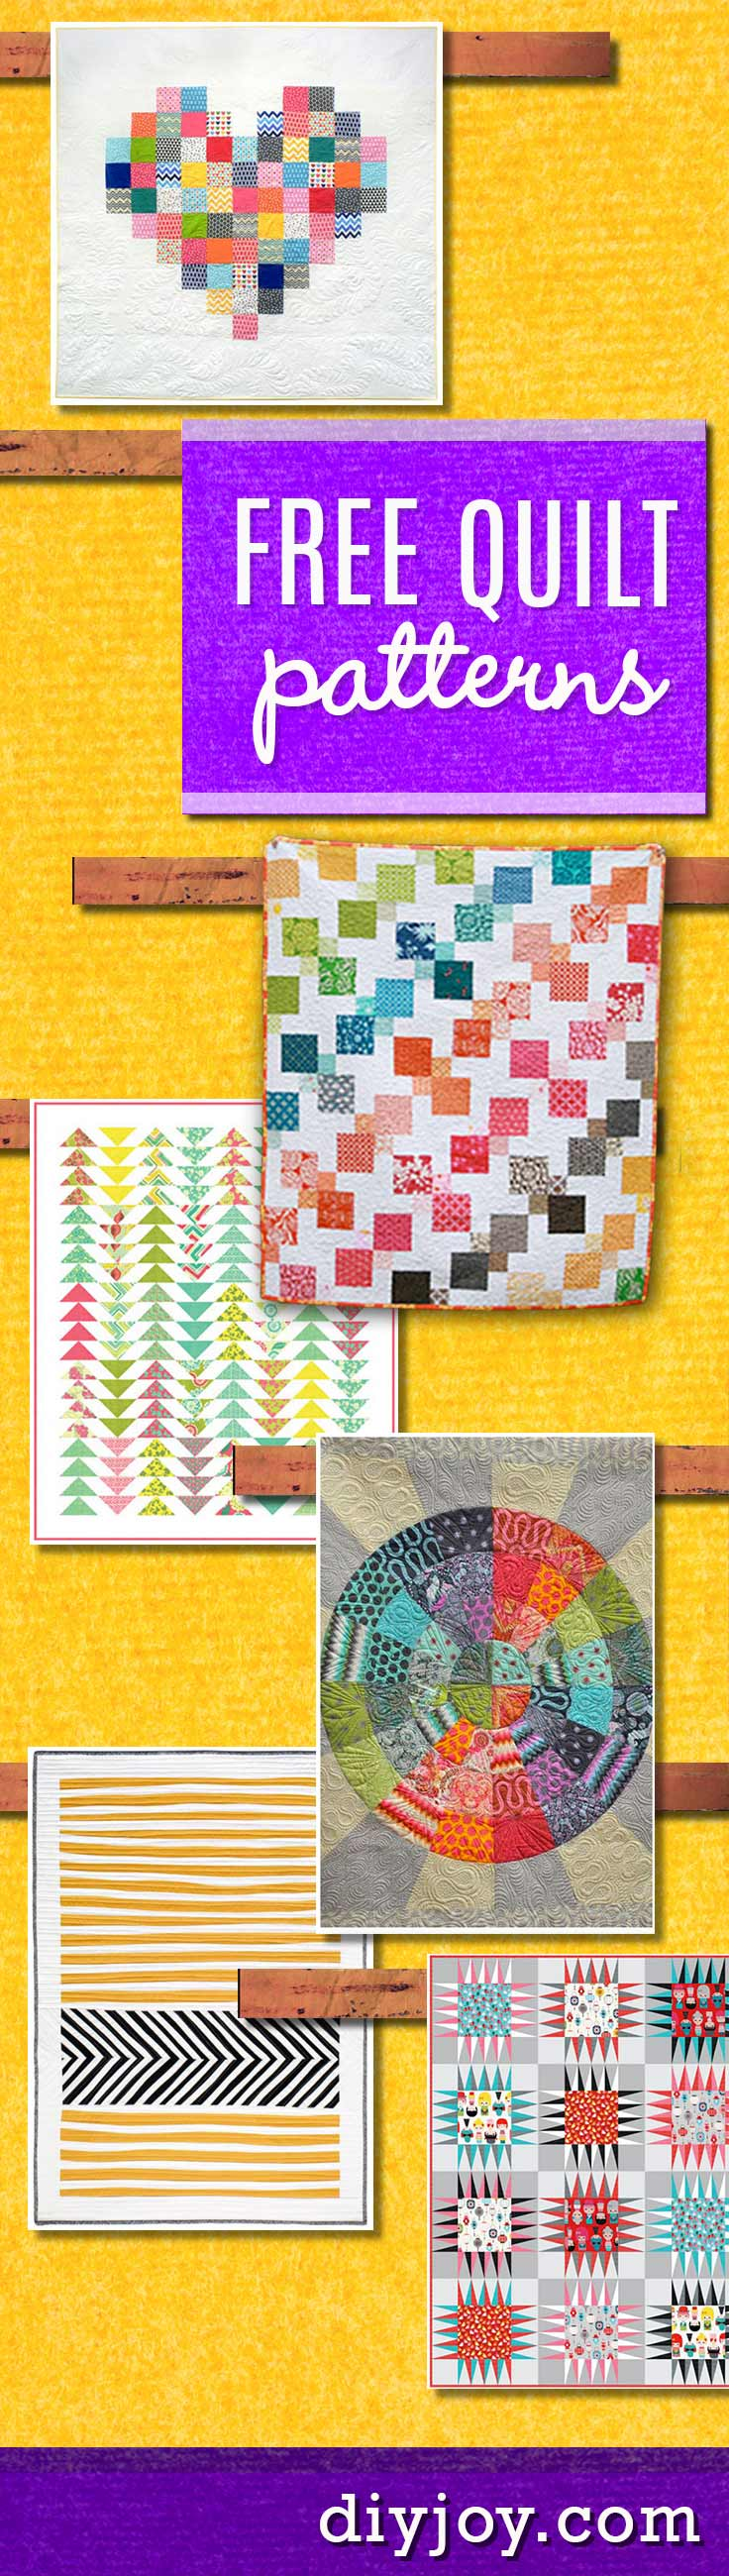 Free Quilt Patterns - Downloadable Free Quilting Pattern Ideas and Tutorials for DIY Quilts - Creative Crafts DIY Home Decor and Sewing Projects